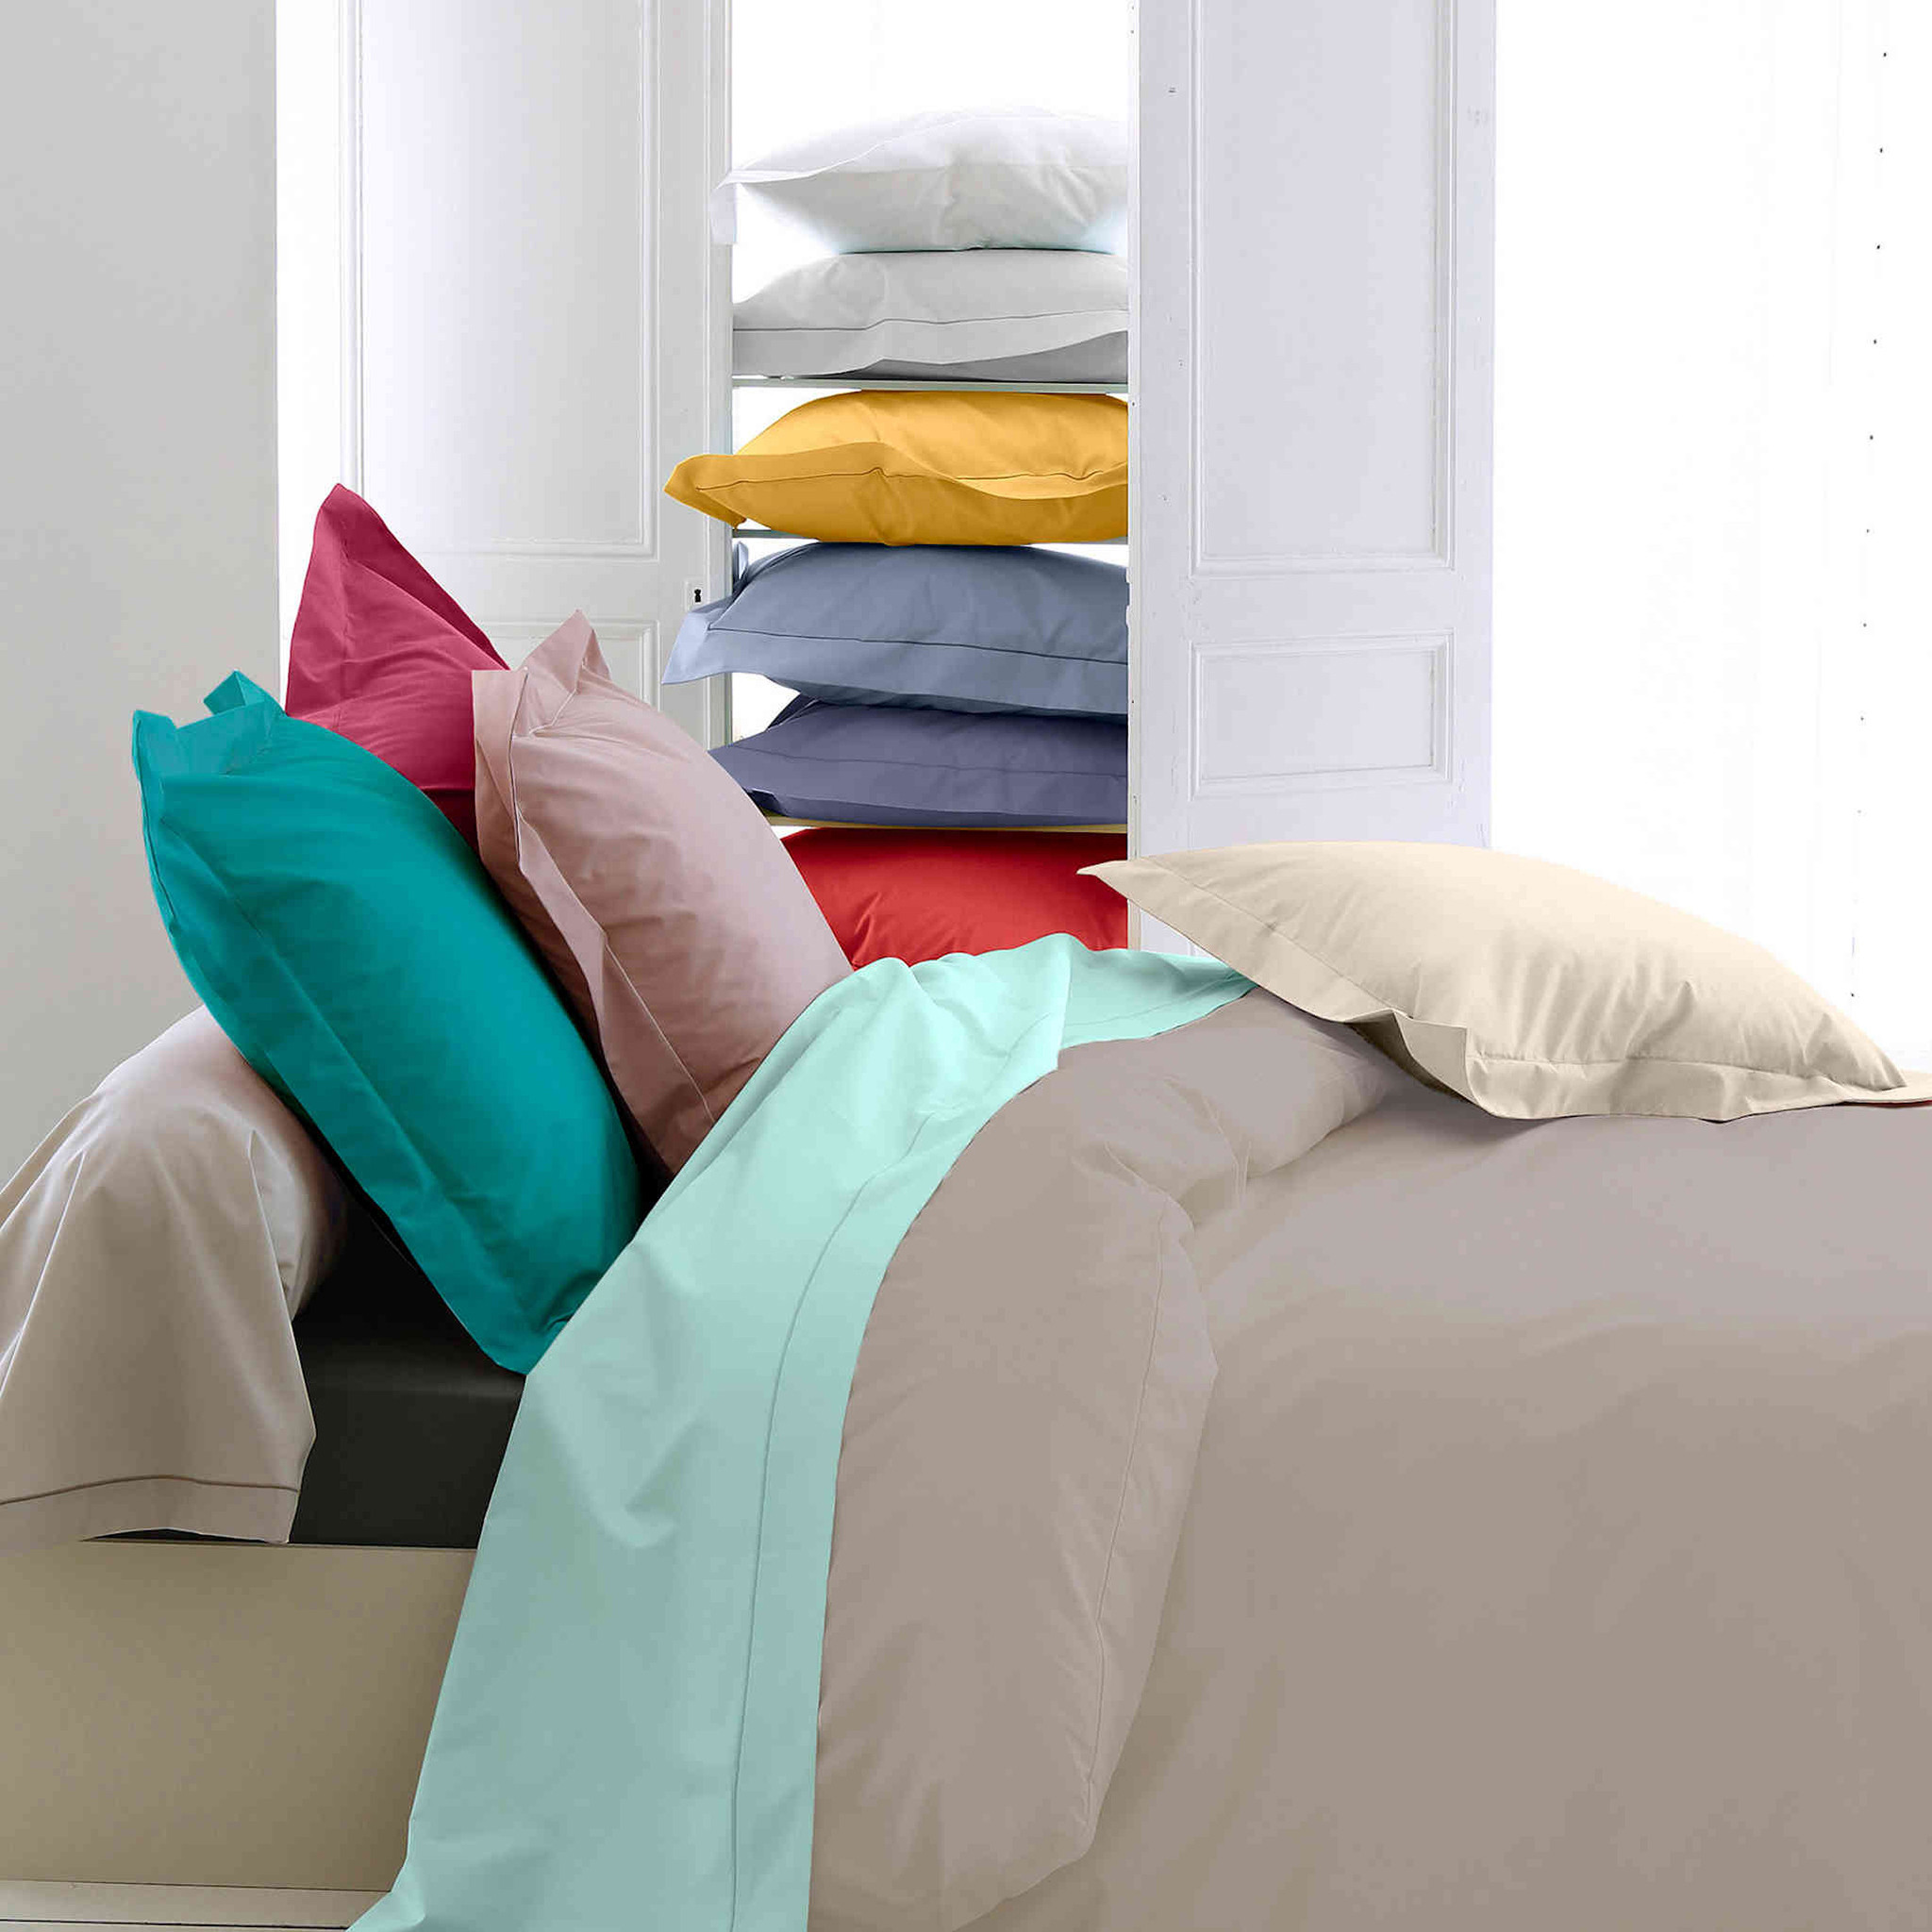 Housse de couette percale lin - Tradilinge